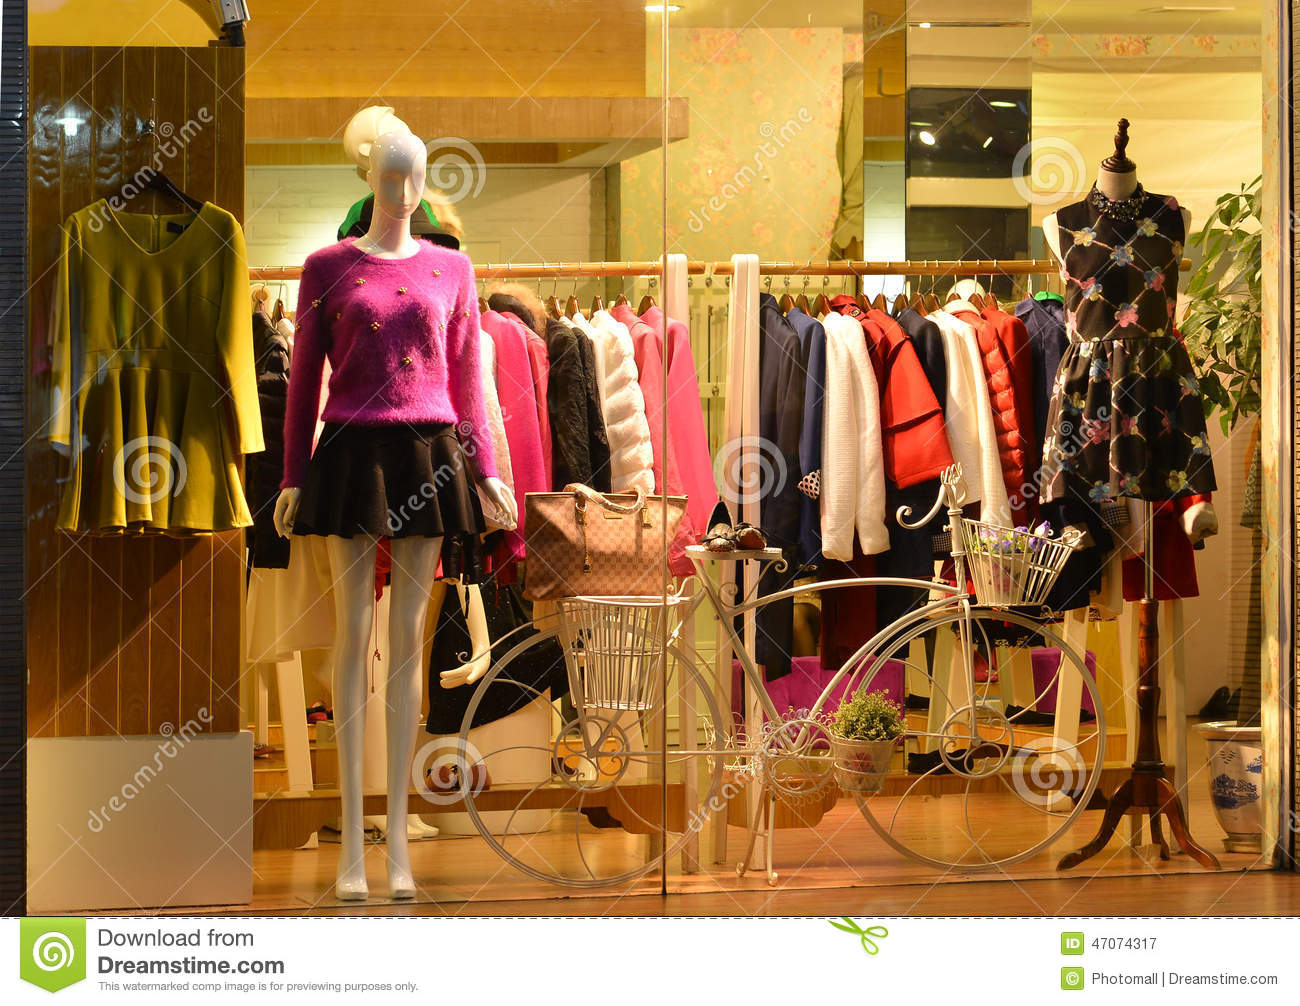 Store Display Window Light And Decorative Bike Fashion Boutique Display Window With Mannequins Store